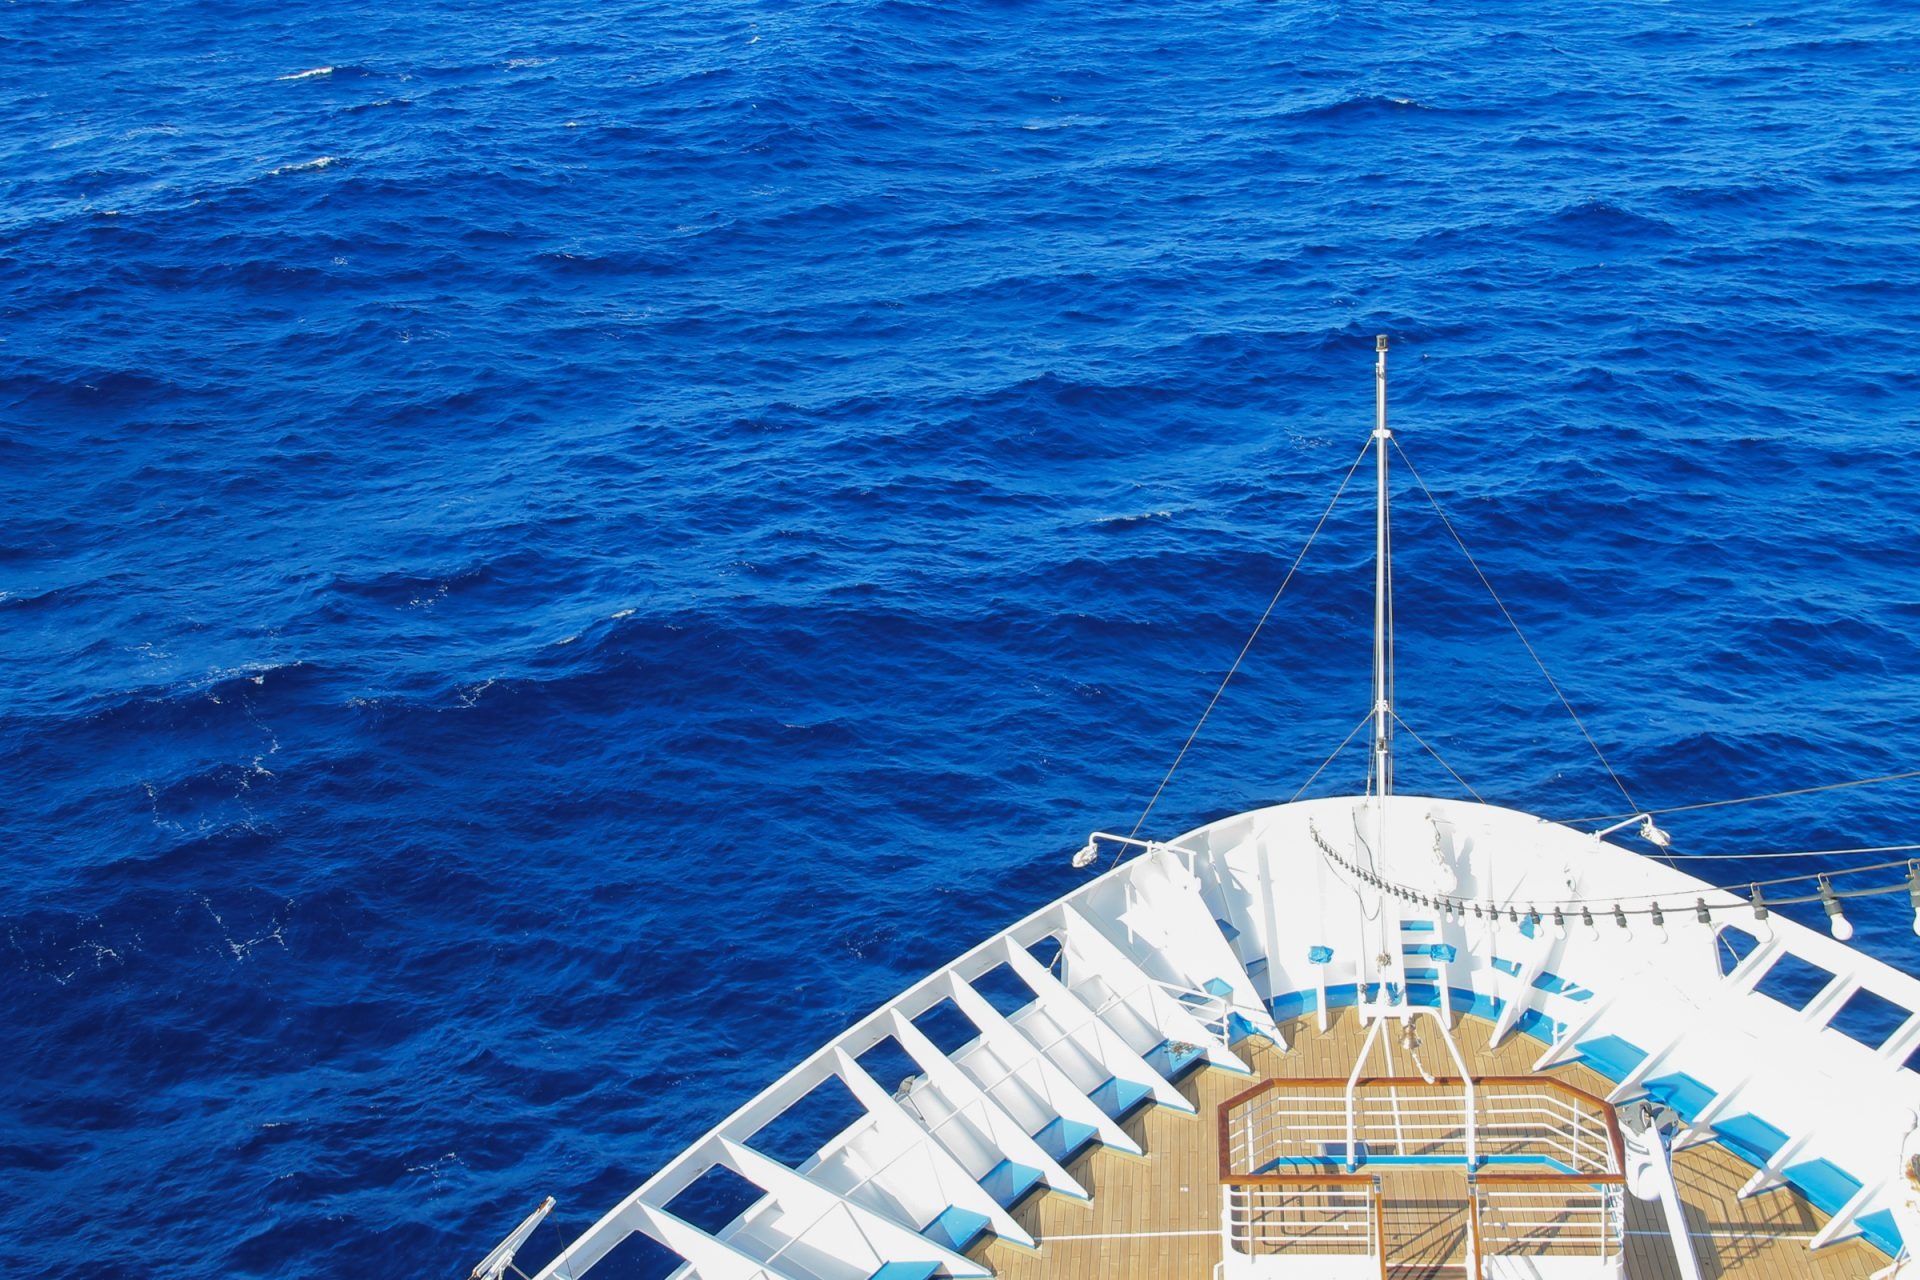 Stern of Cruise Ship on Ocean